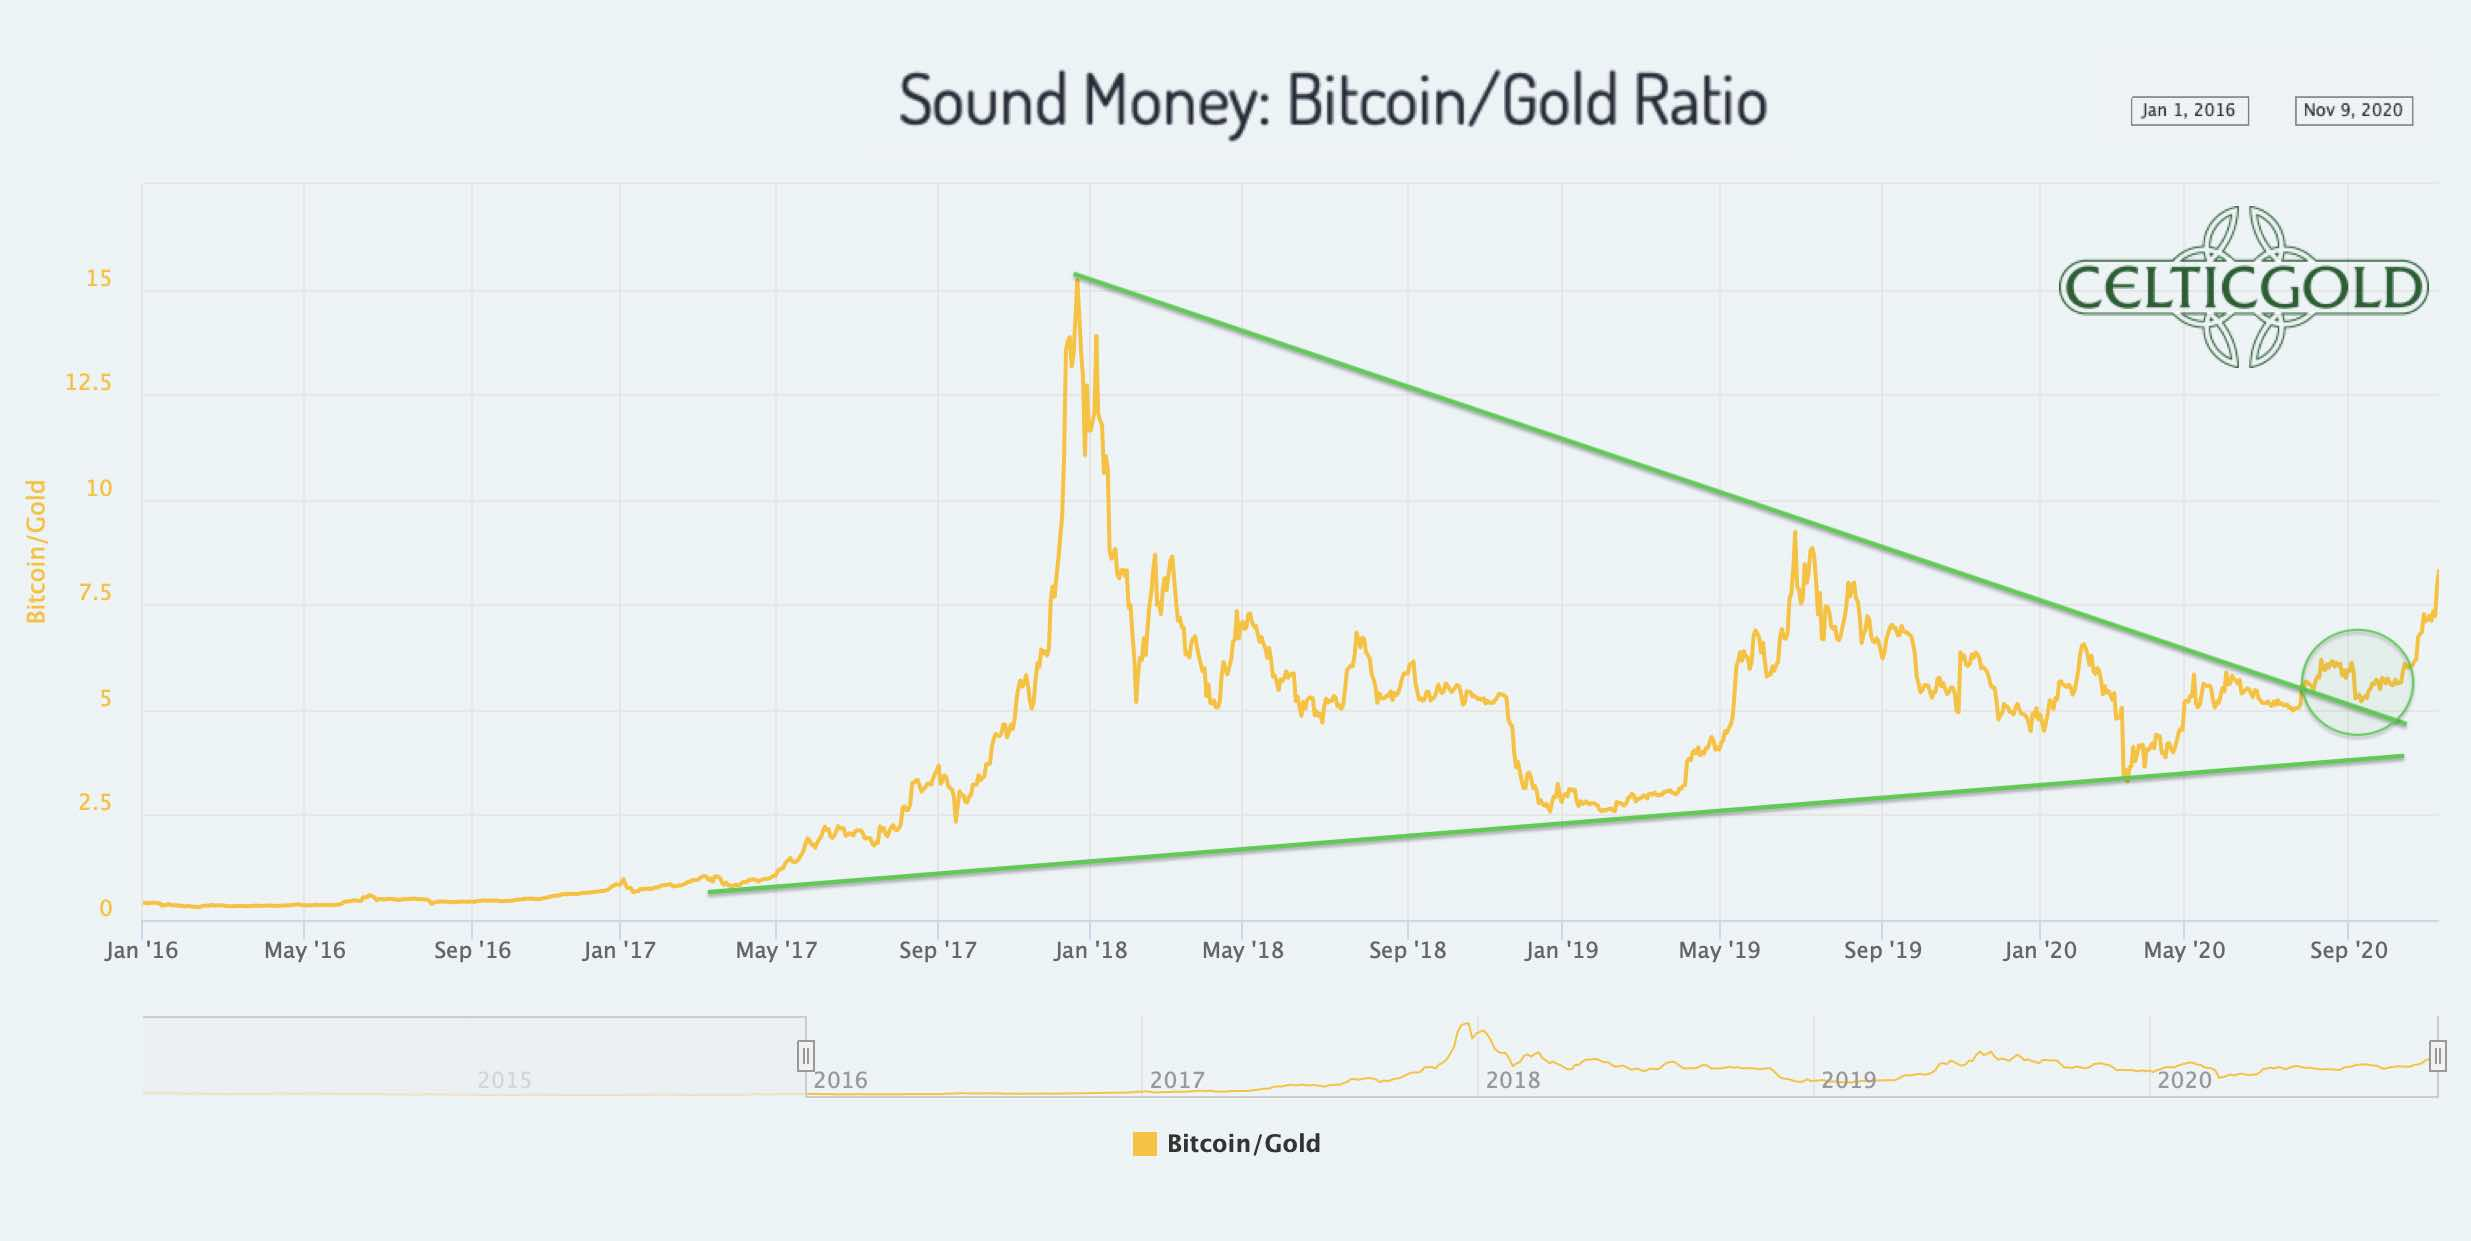 Sound Money Bitcoin/Gold-Ratio as of November 9th, 2020. Source: Chaia